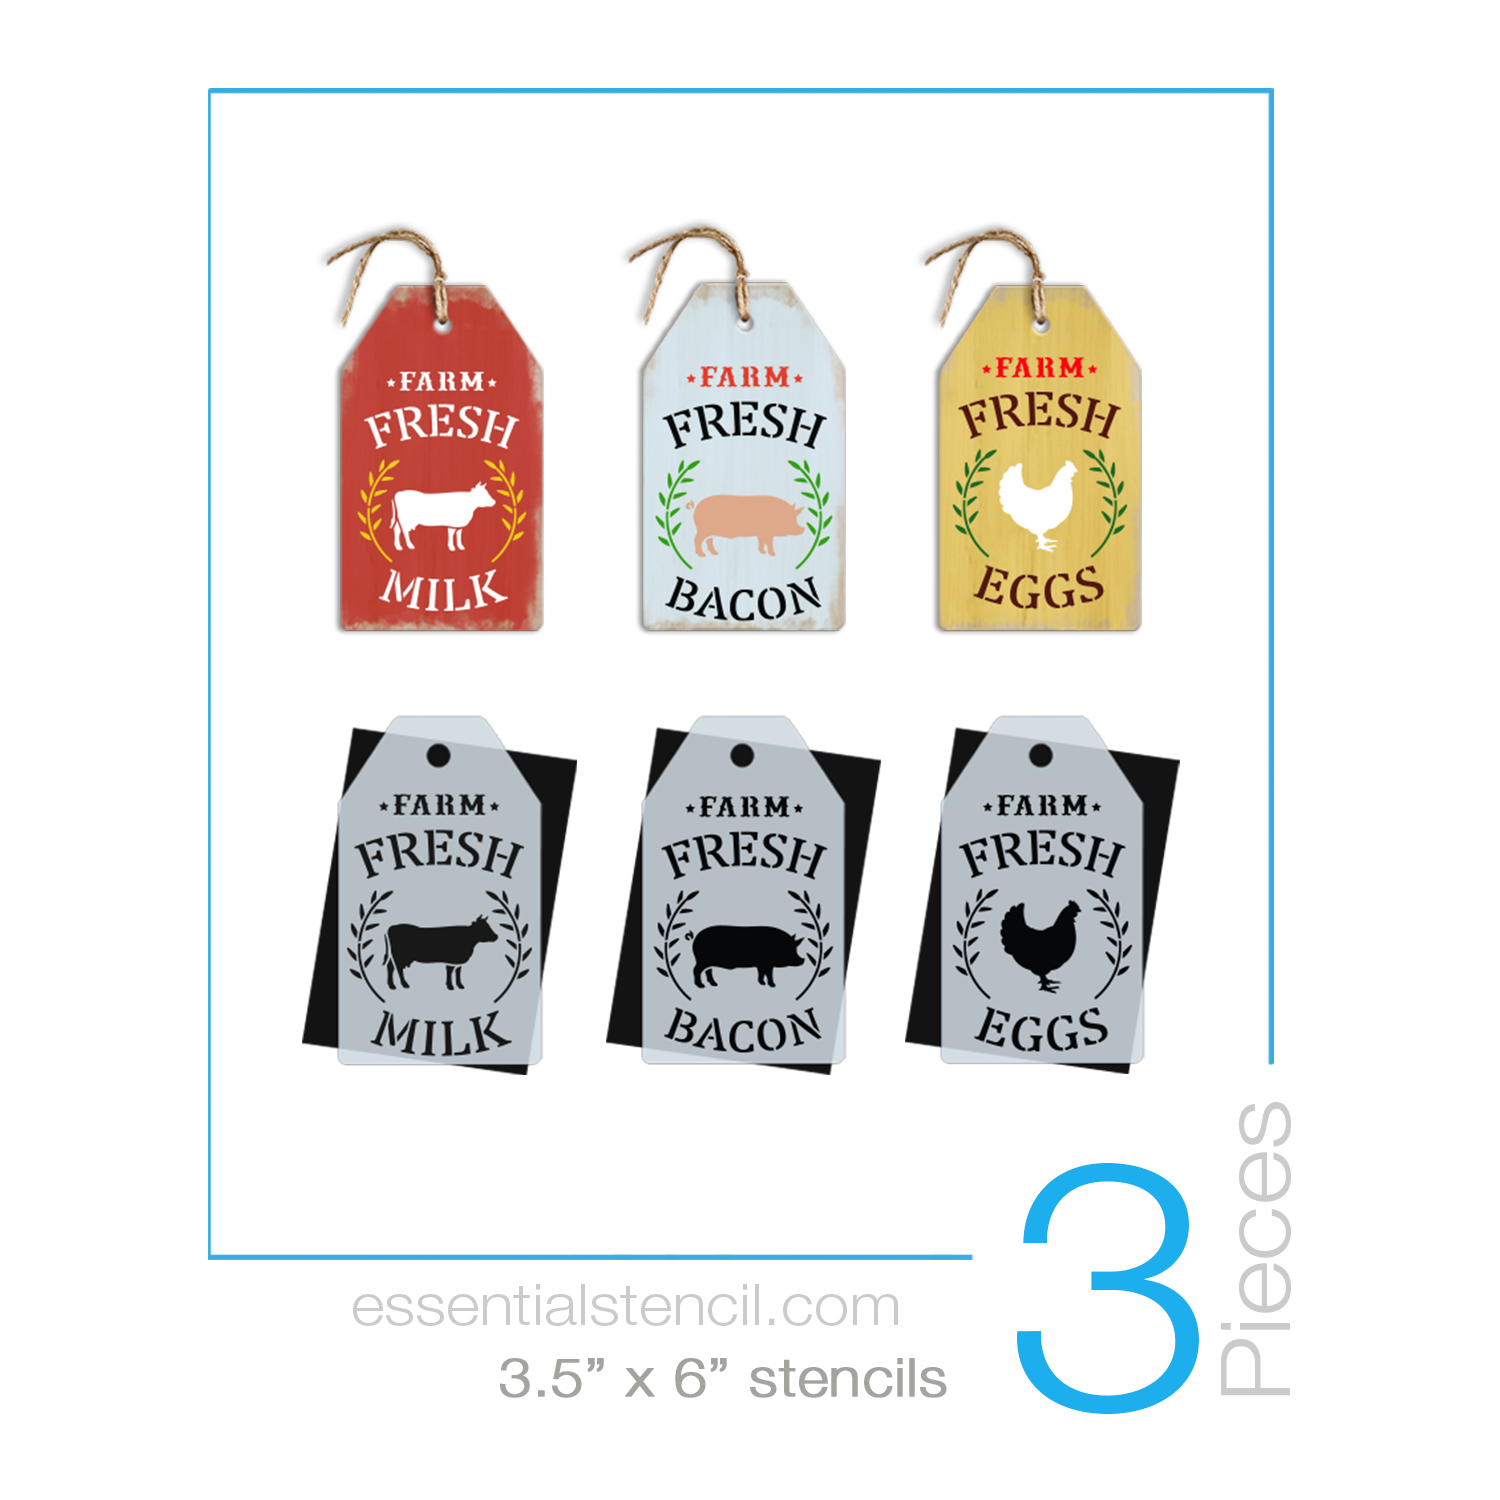 DIY reusable farmhouse mini tag stencils, Mini Tag Farm Fresh Milk Cow stencil, Farm fresh bacon pig stencil, Farm fresh eggs chicken stencil, Farm fresh mini tag stencils